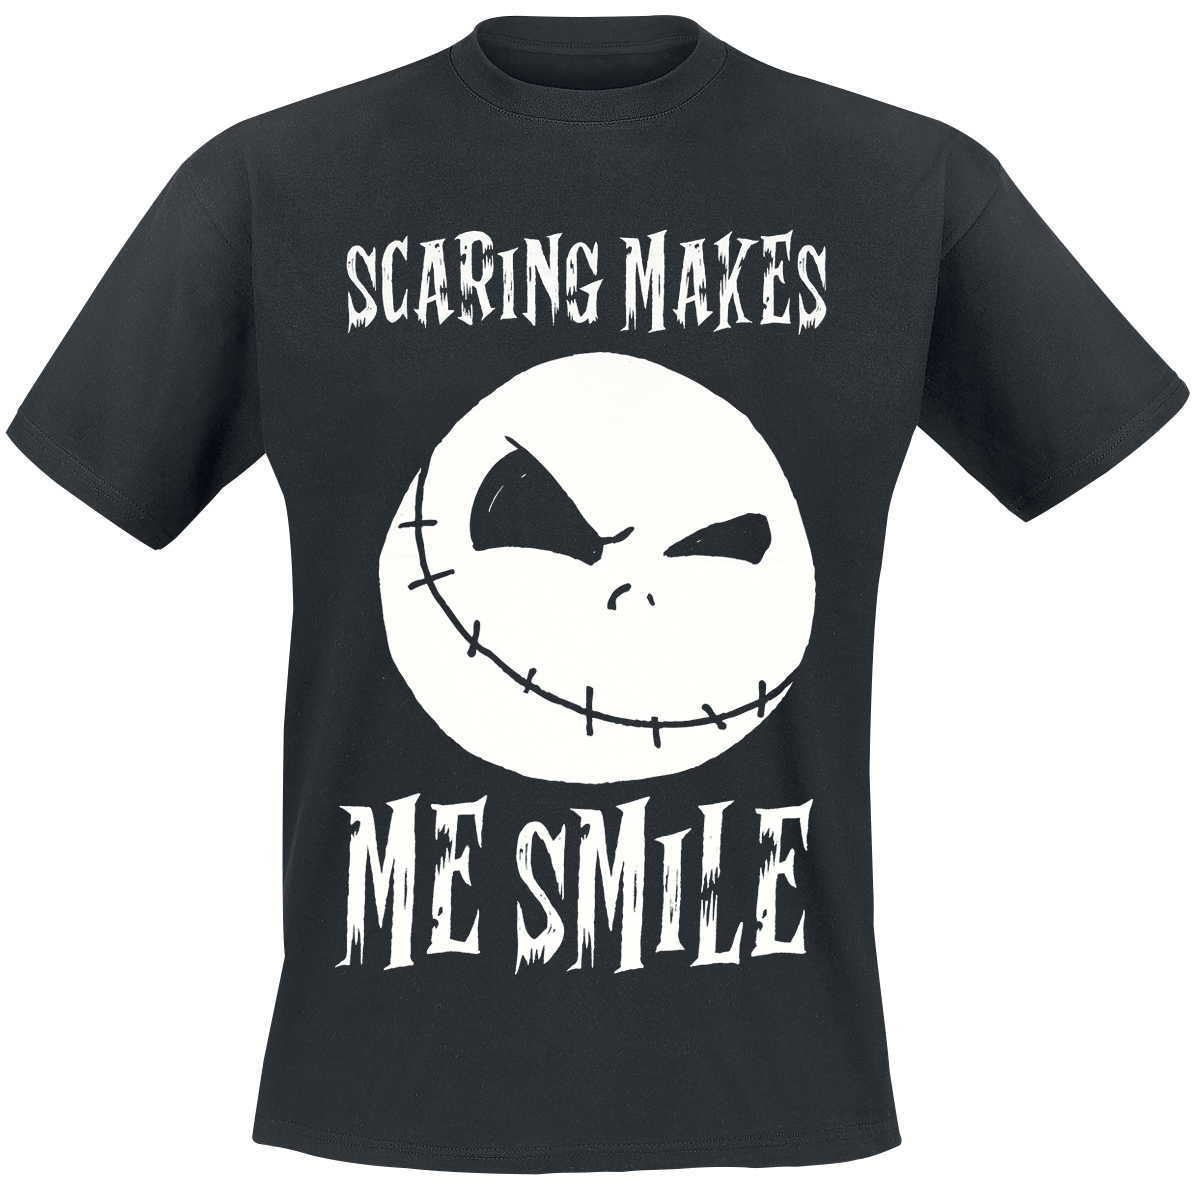 The Nightmare Before Christmas - Scaring Makes Me Smile - T-Shirt - black image